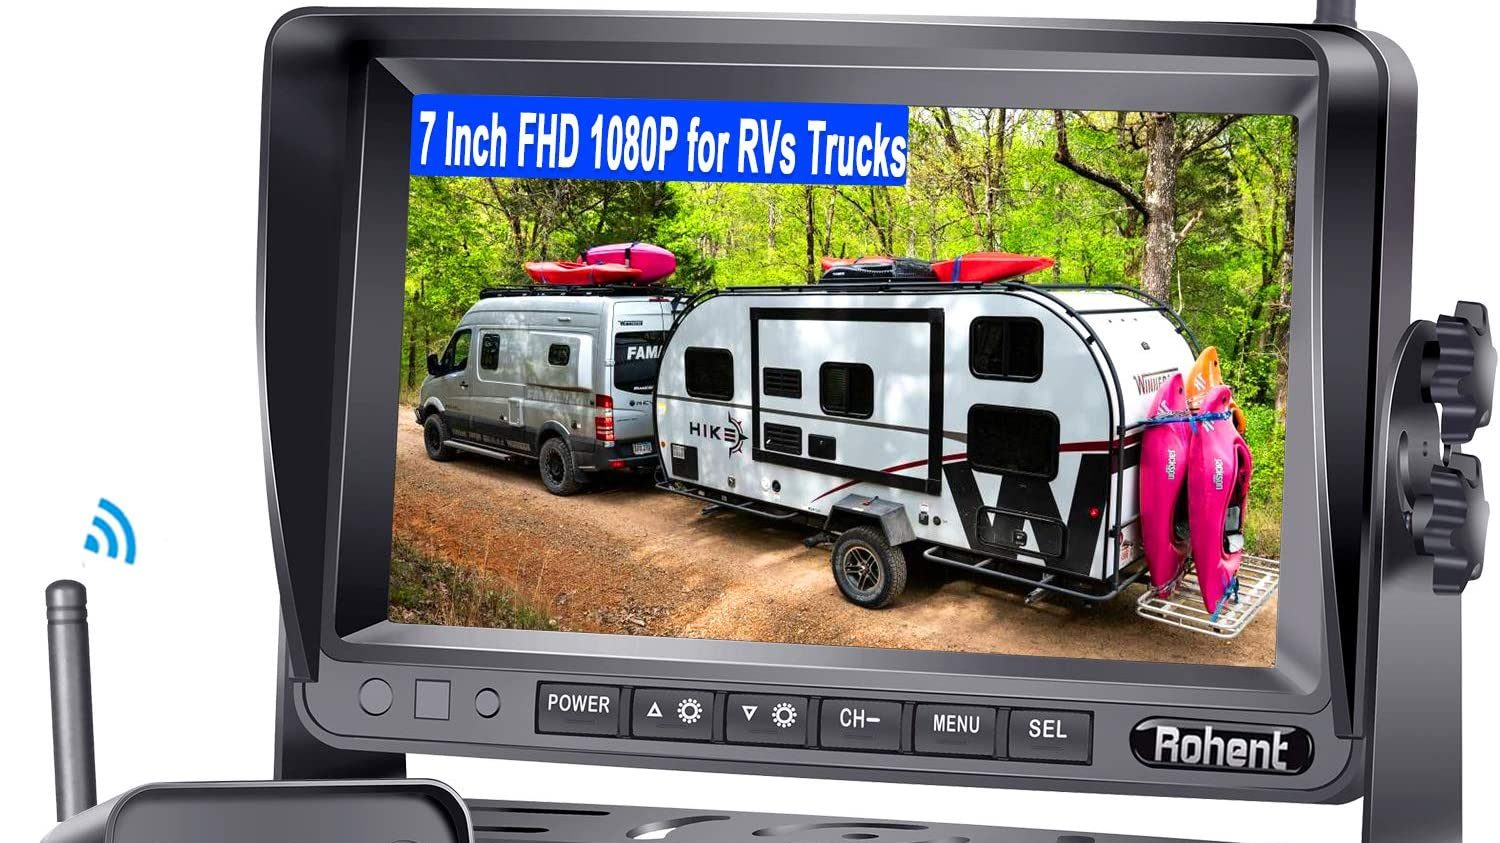 Best for RVs